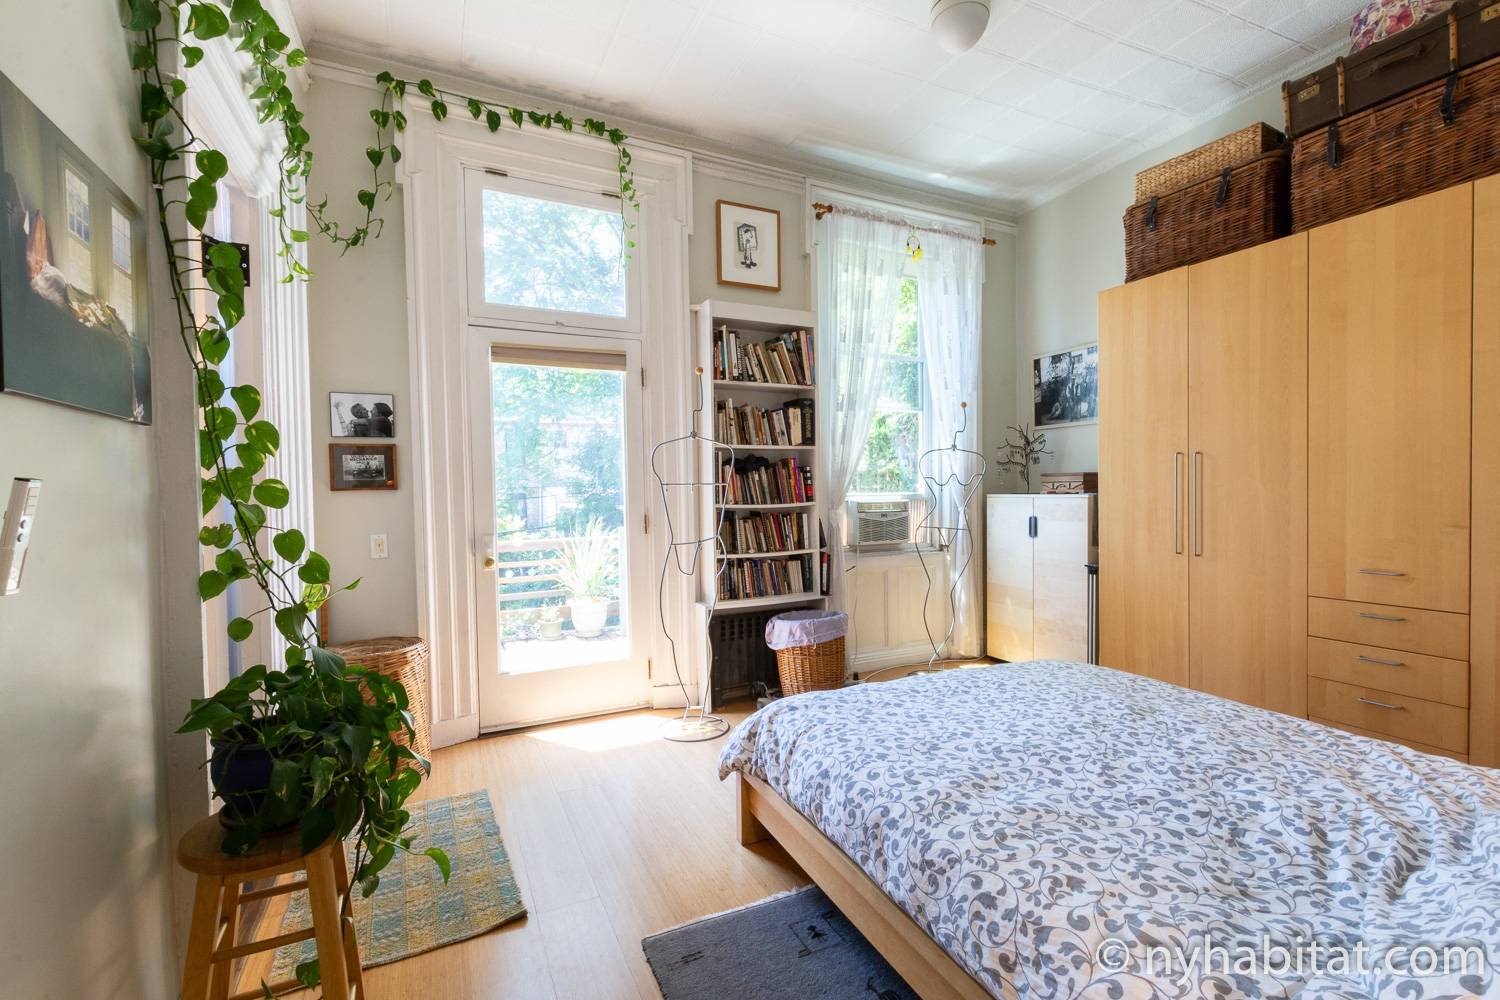 Image of bedroom in NY-17602 with queen-sized bed, bookshelf, plants, closet, artwork, and door to an outdoor terrace.